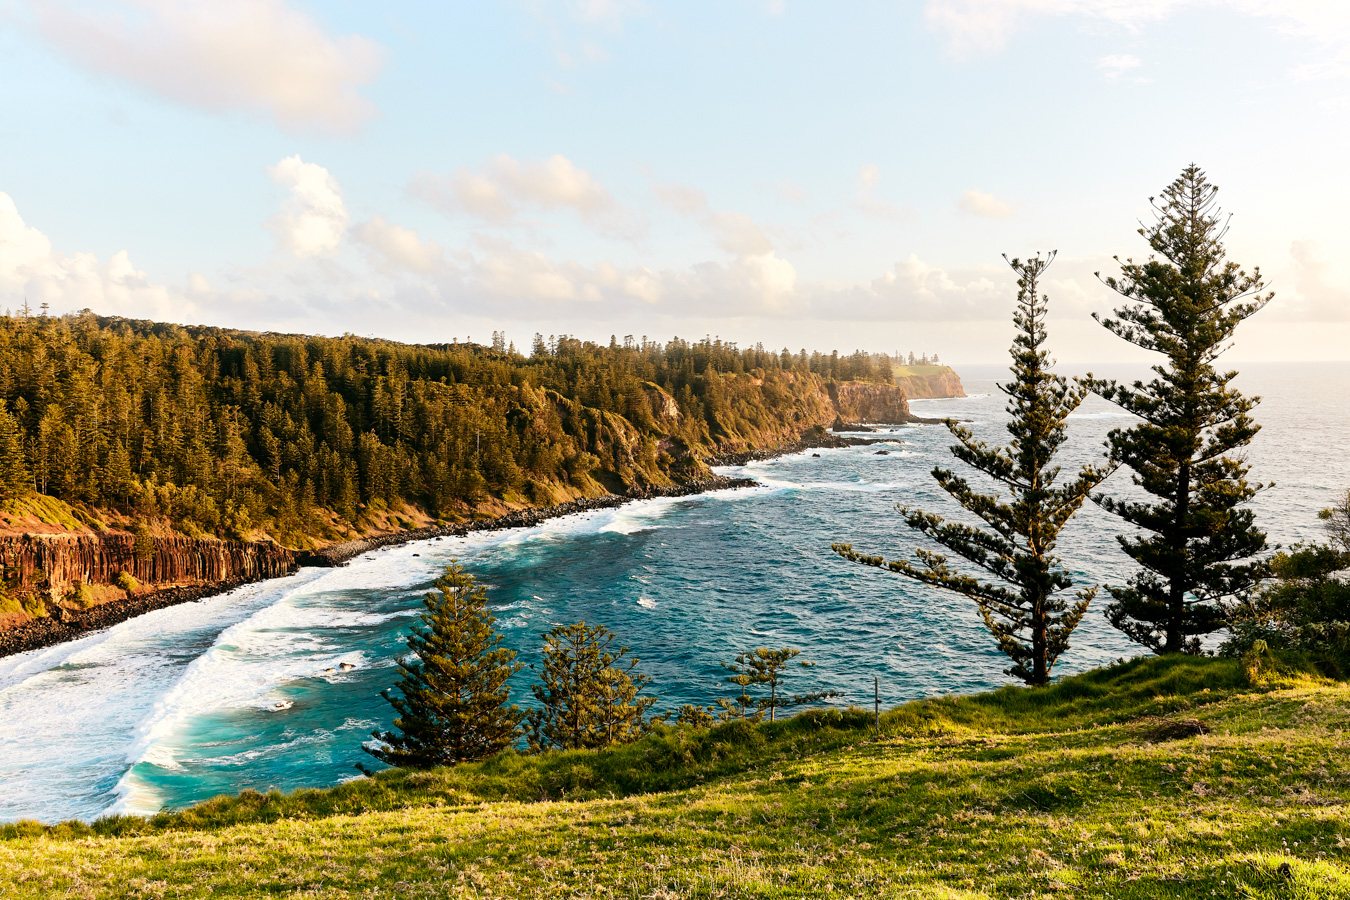 Norfolk Island by Bonnie Coumbe, commissioned by Delicious magazine for their February 2019 issue.